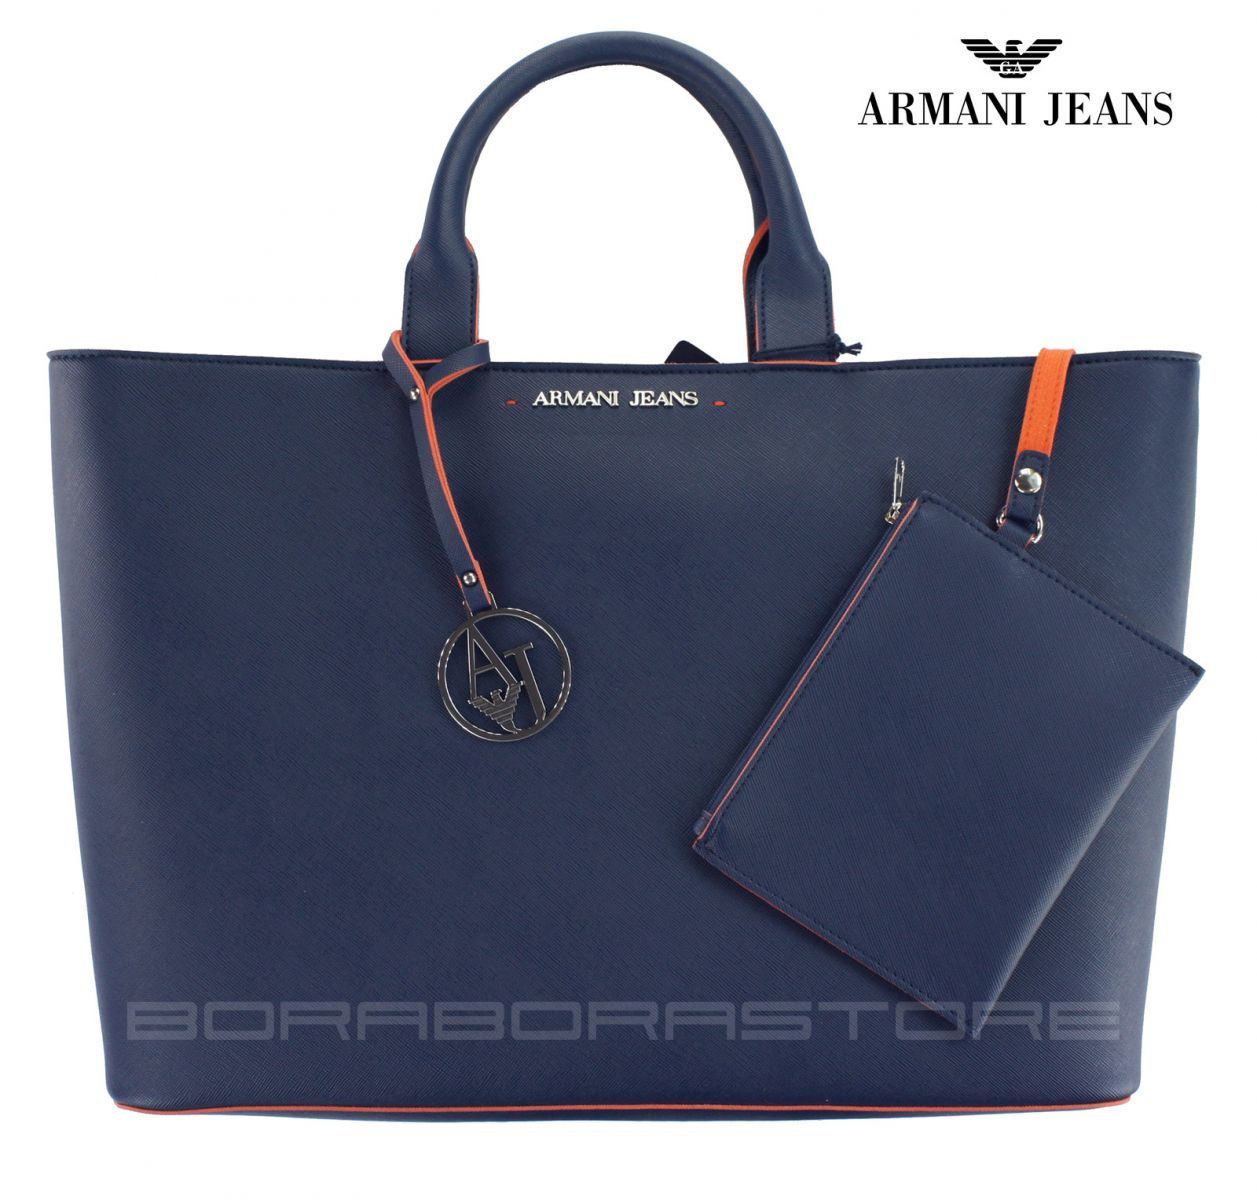 armani jeans damen bag frauen tasche mod 0524v blau ebay. Black Bedroom Furniture Sets. Home Design Ideas